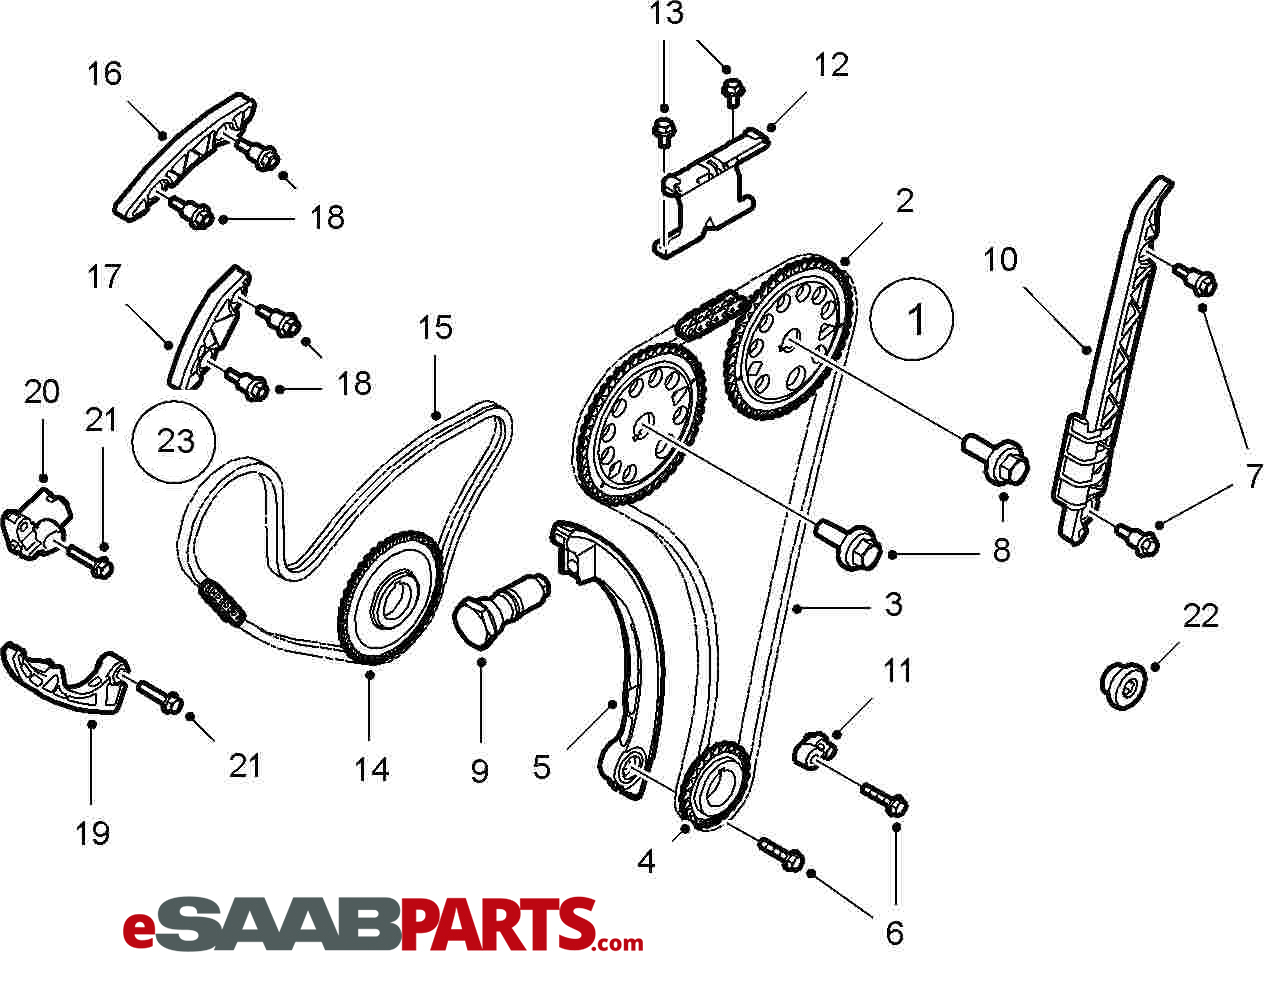 2003 saab motor diagrams